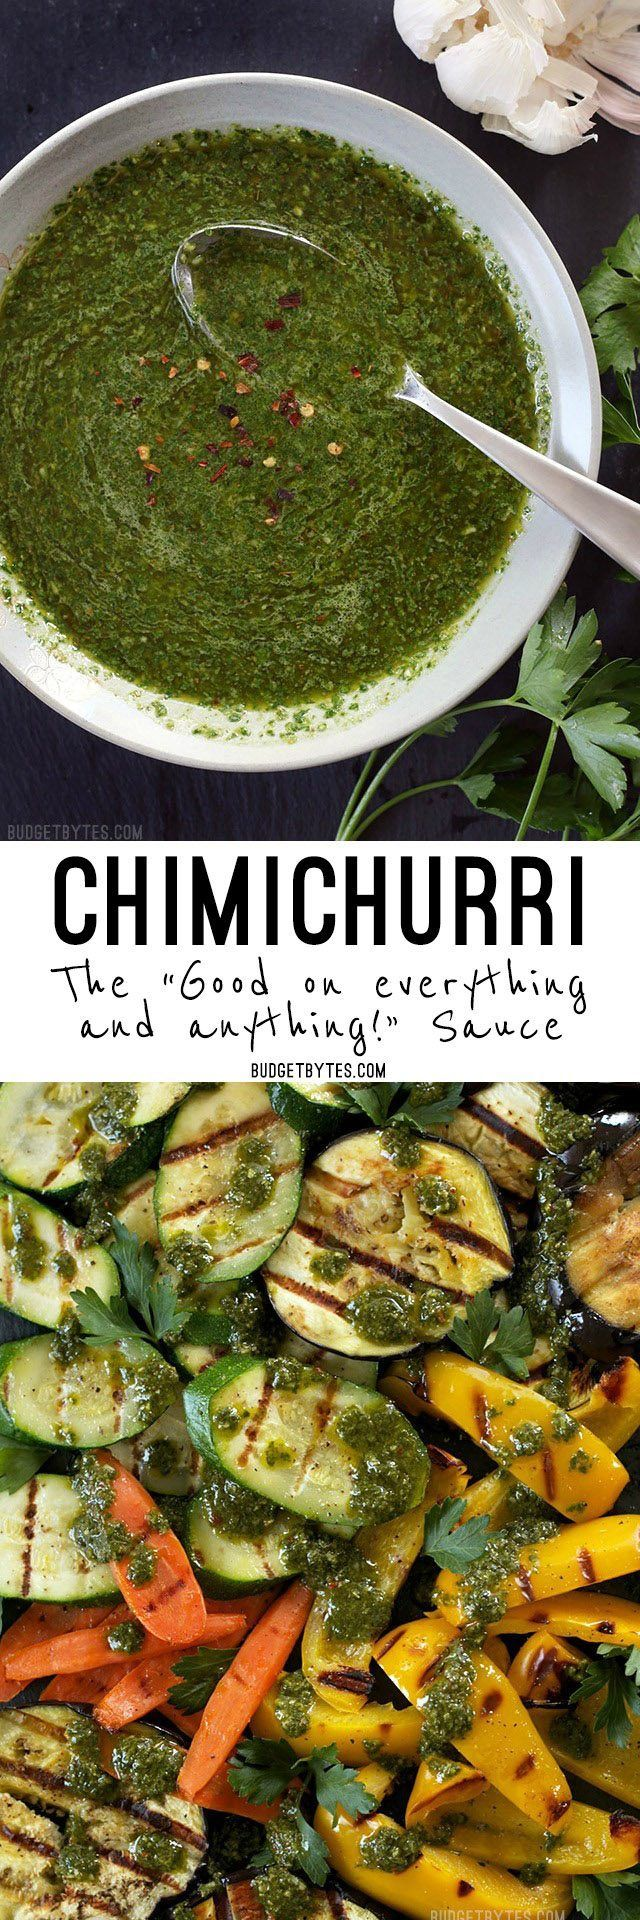 Chimichurri is a vibrant, fresh, and incredibly simple sauce that delivers big flavor to any meal.